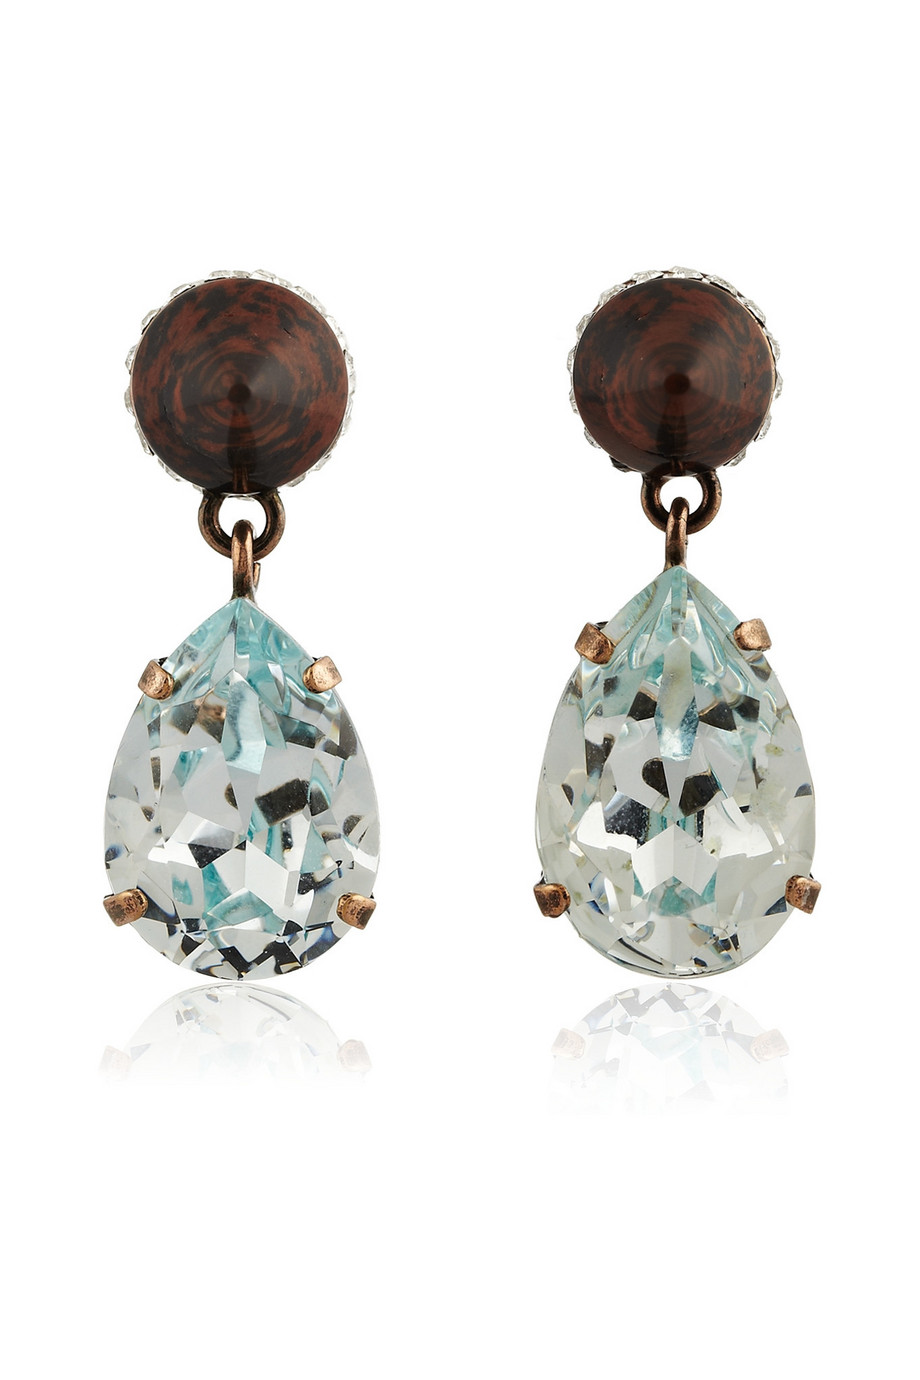 Givenchy Cone Pendant Earrings in Mineral Stone and Crystal, Sky Blue, Women's